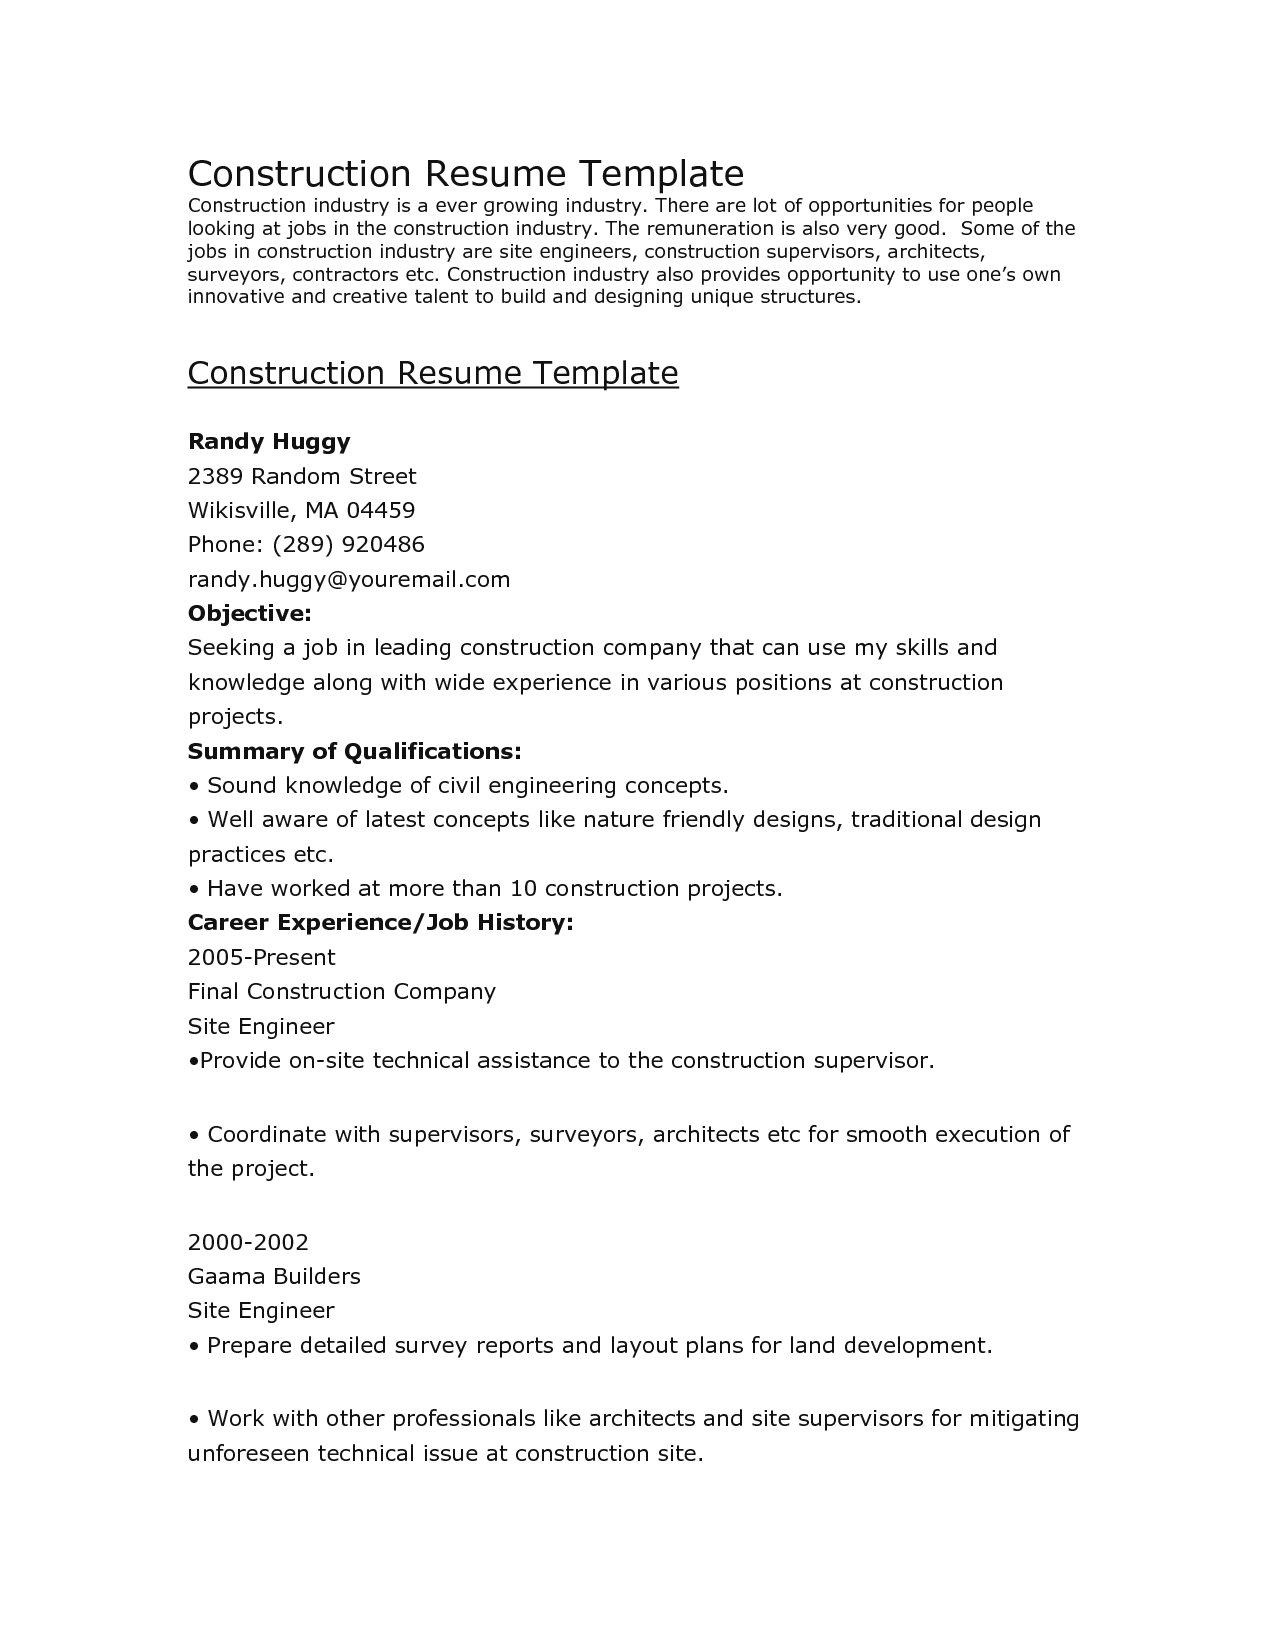 Laborer Resume Construction Resume Template  Cv Examples  Pinterest